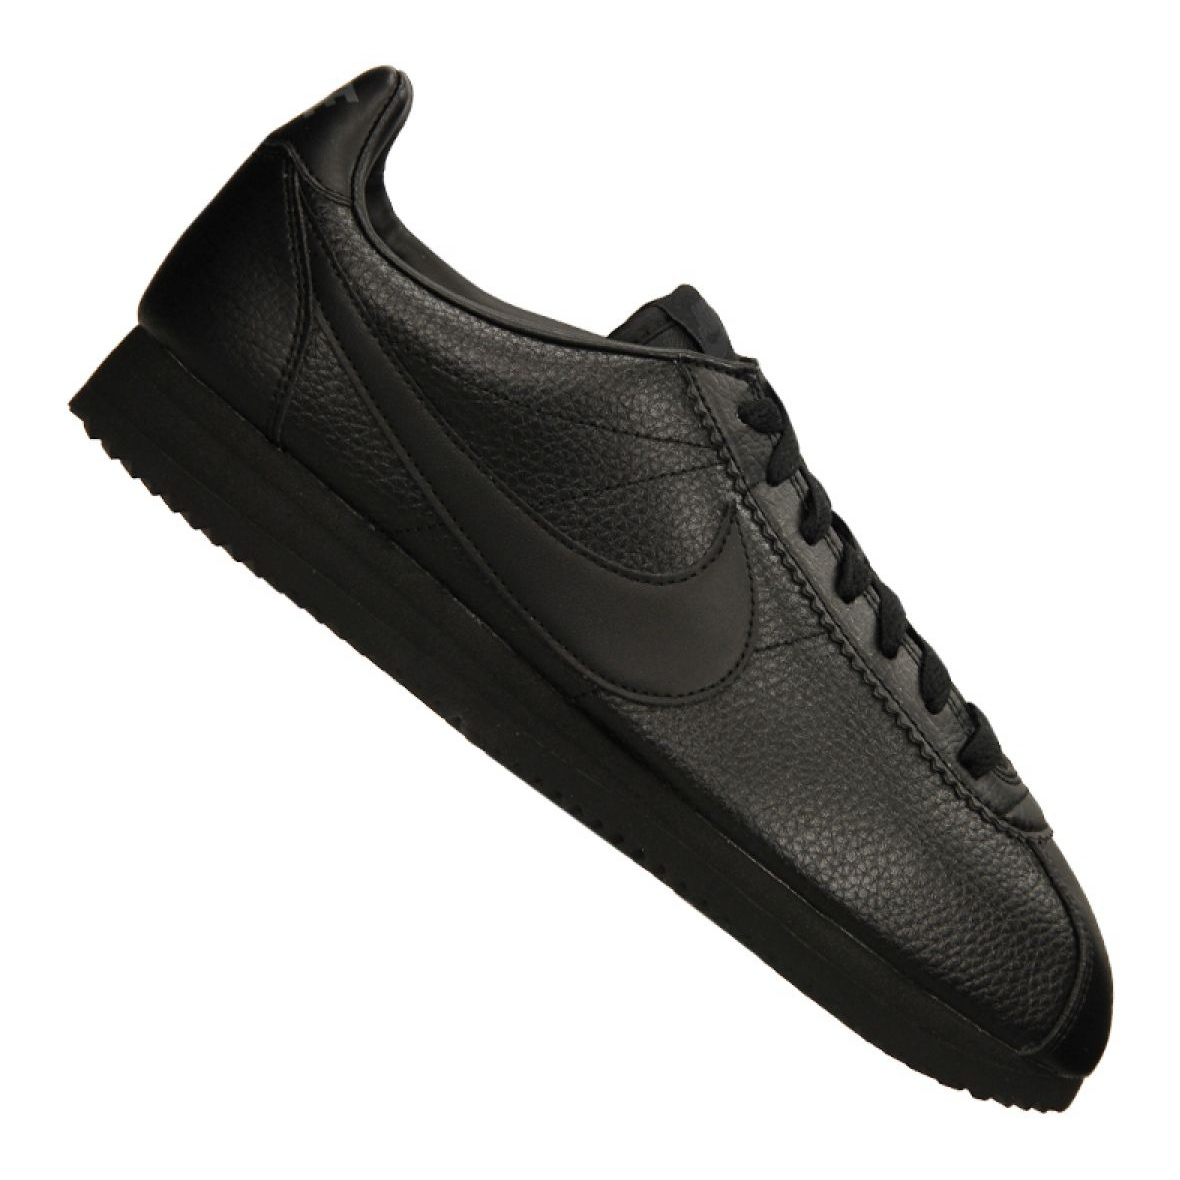 Nike Classic Leather M 749571-002 shoes